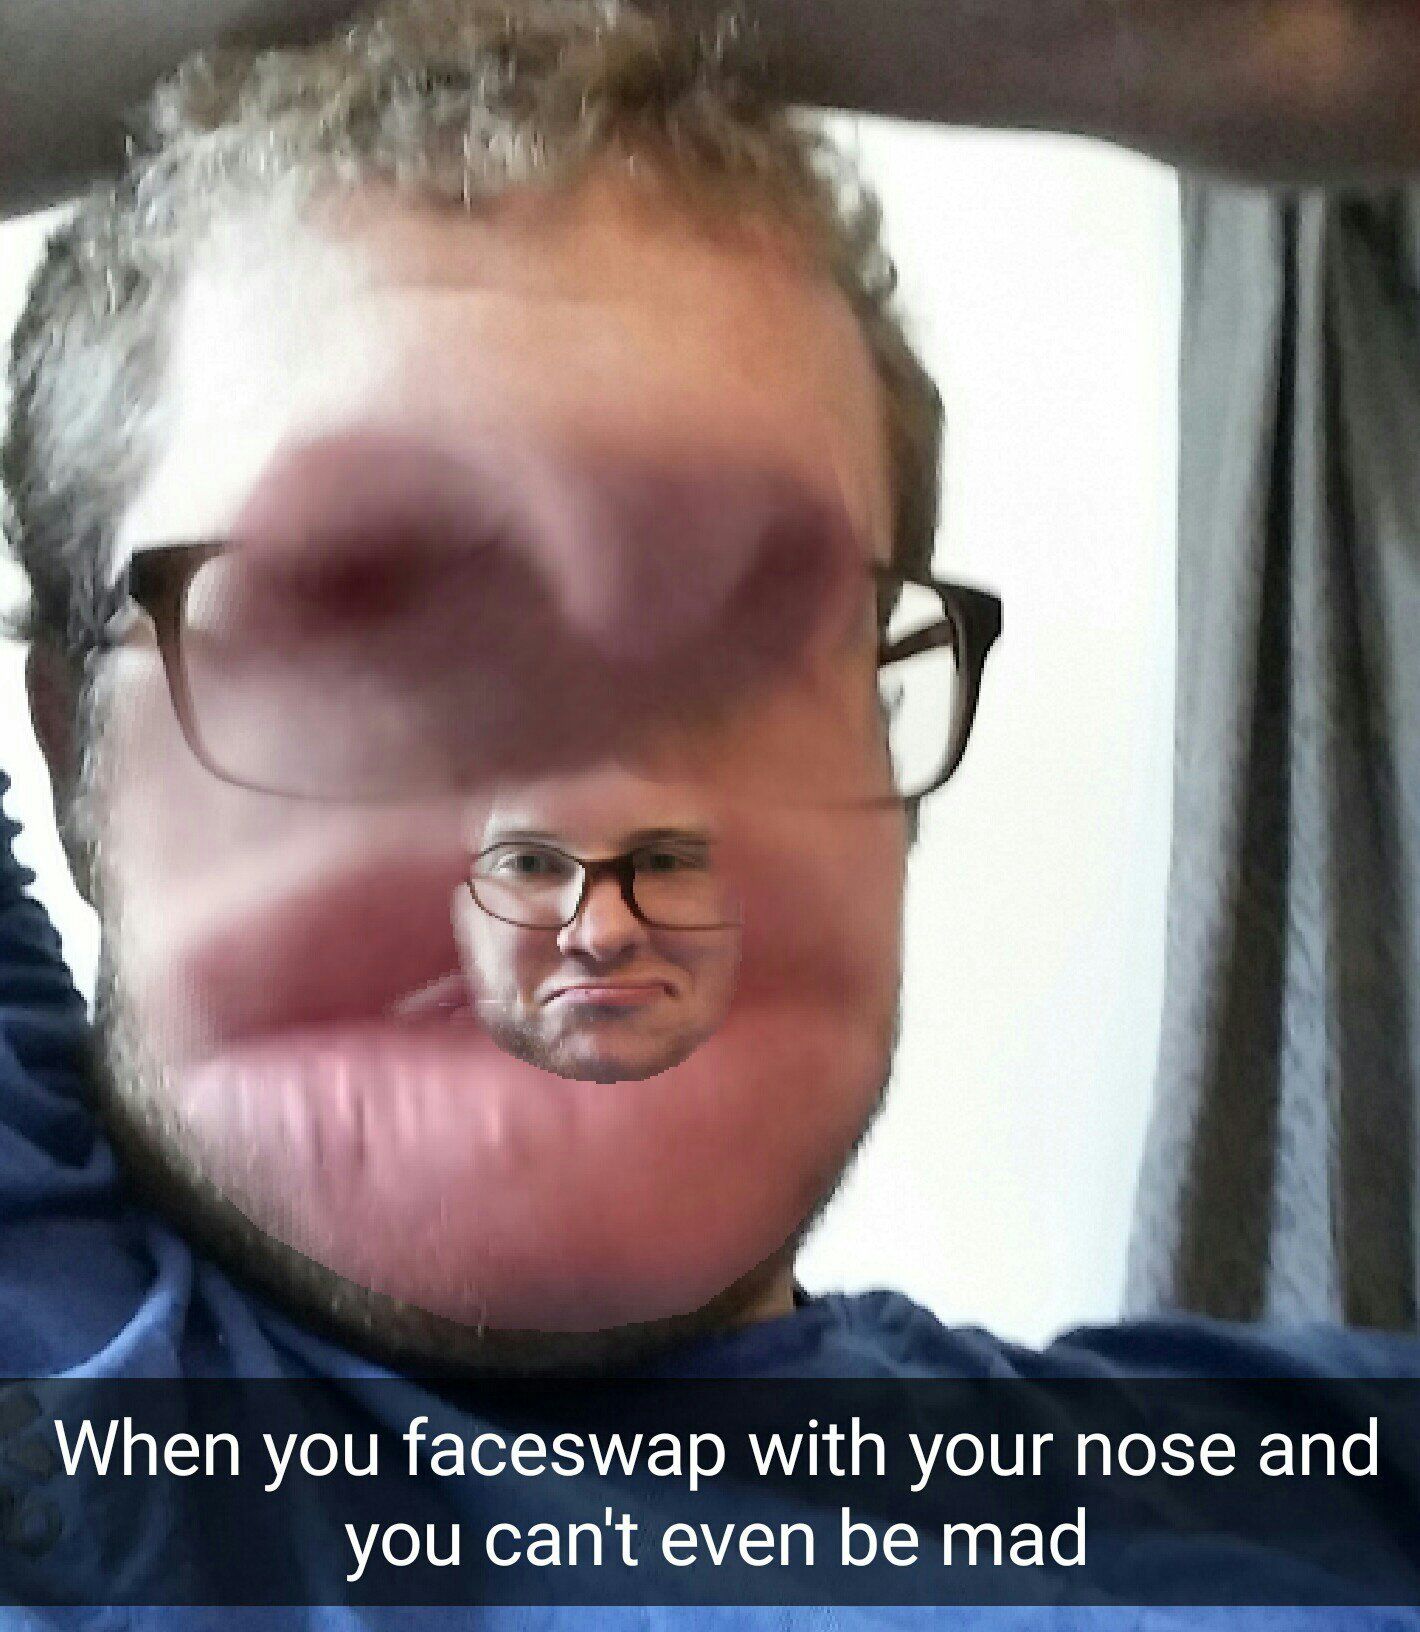 Title thinks snapchat is over-rated - meme